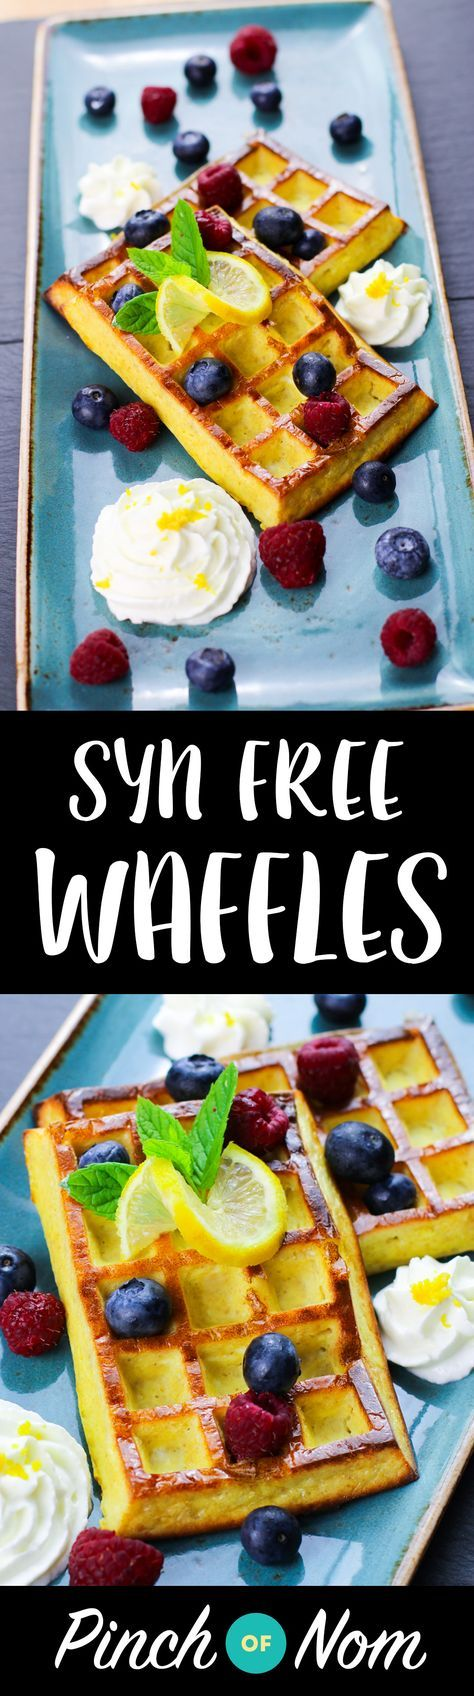 Syn Free Lemon & Blueberry Waffles | Slimming World - http://pinchofnom.com/recipes/syn-free-lemon-blueberry-waffles/